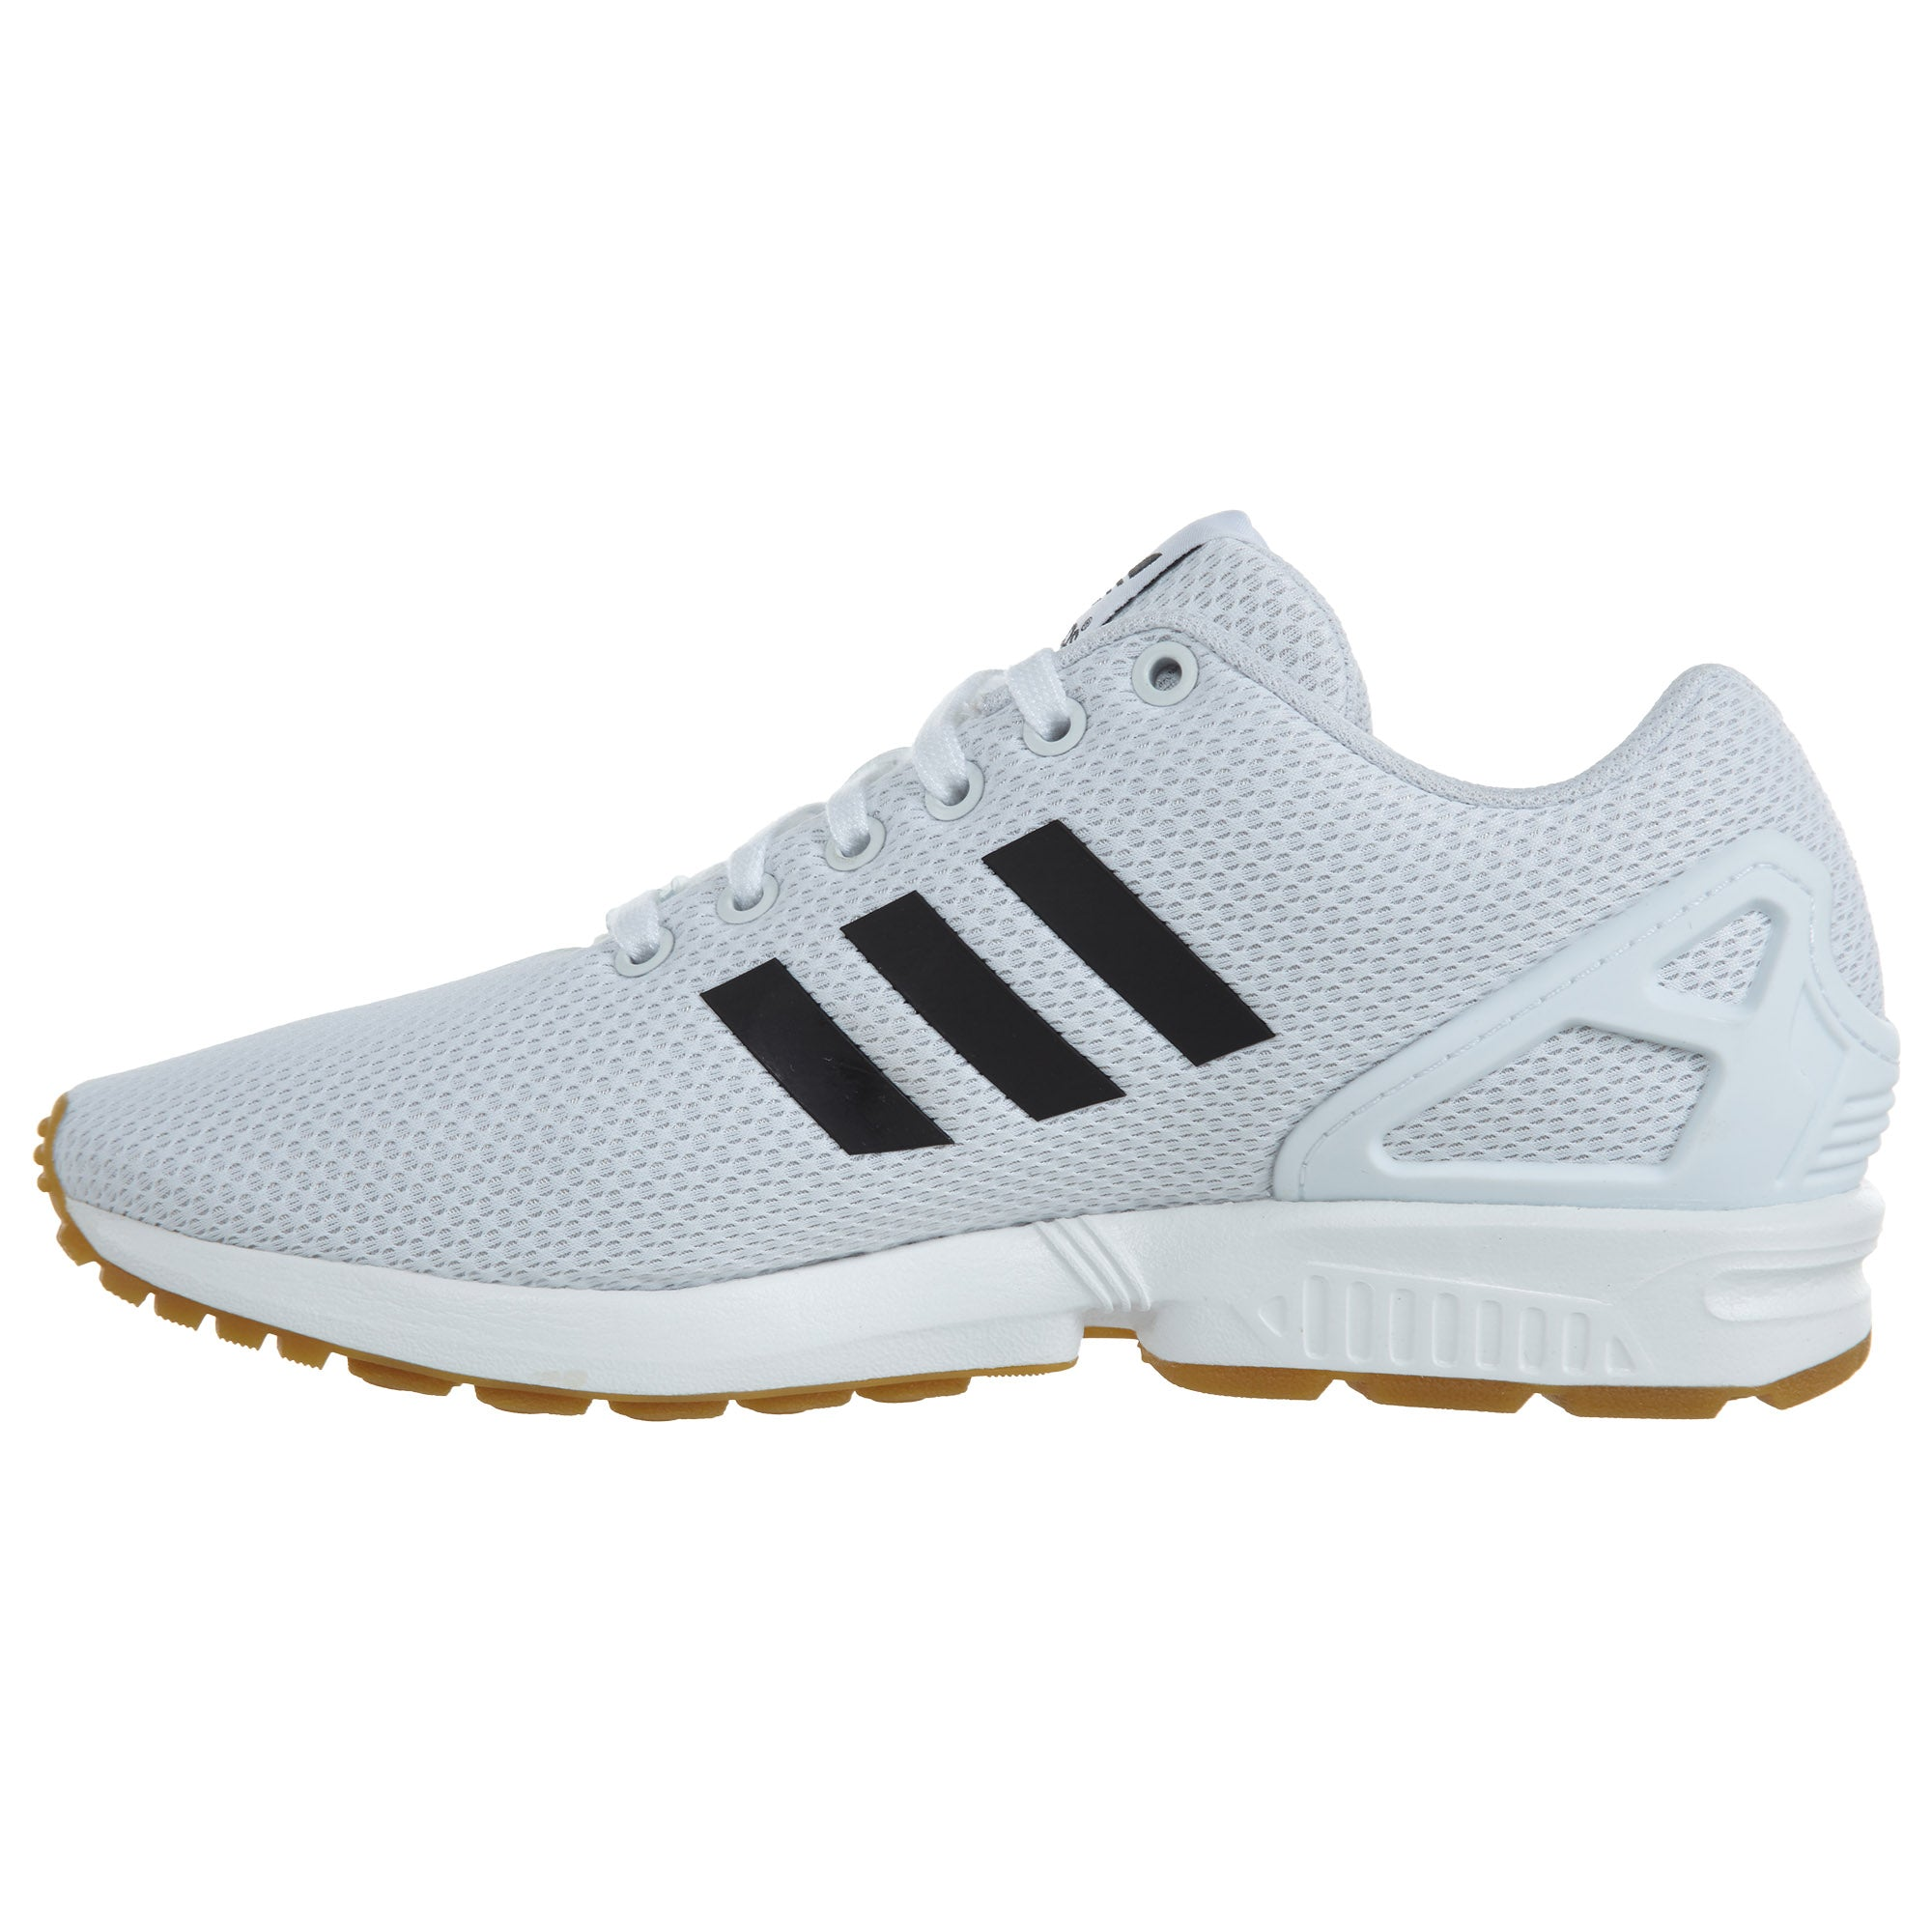 5db999f26e6b8 Adidas Zx Flux Mens Style   By2037